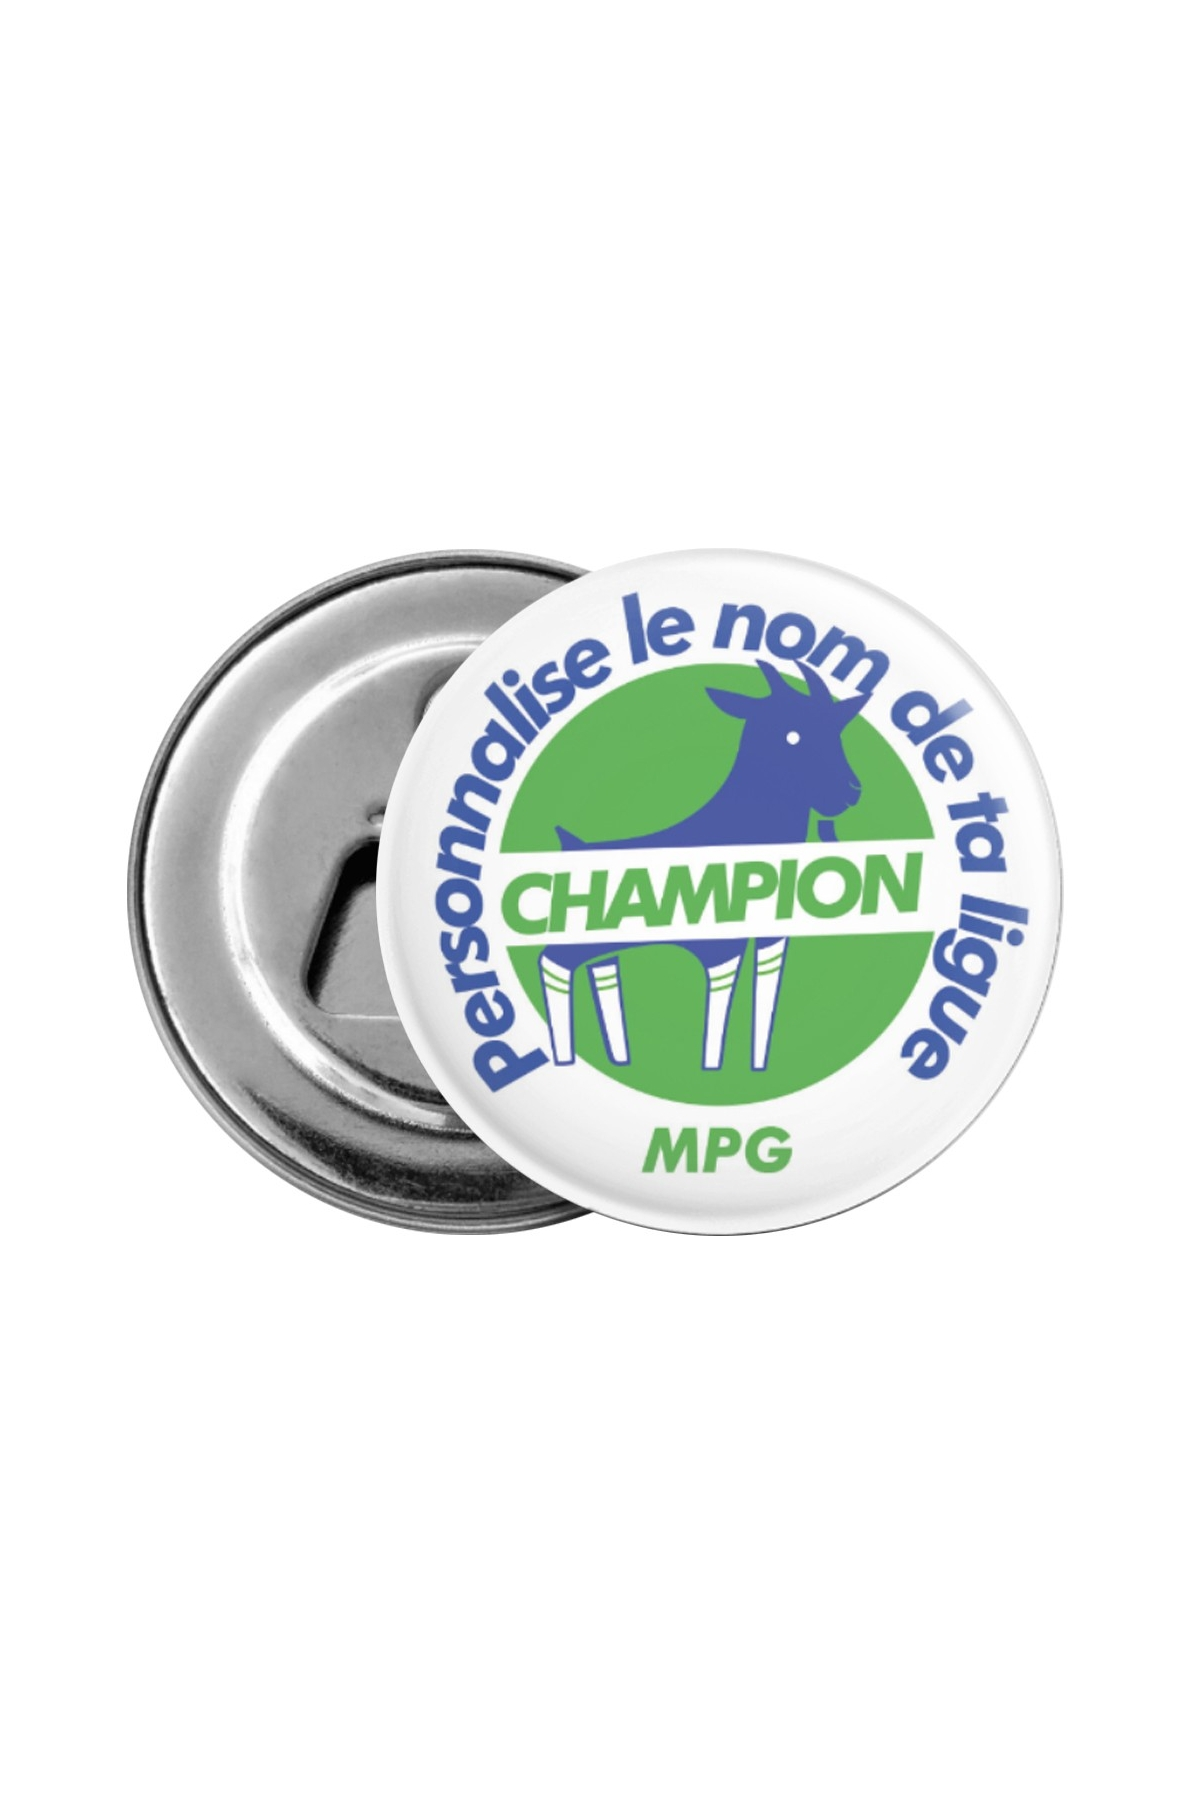 Décapsuleur Champion personnalisable